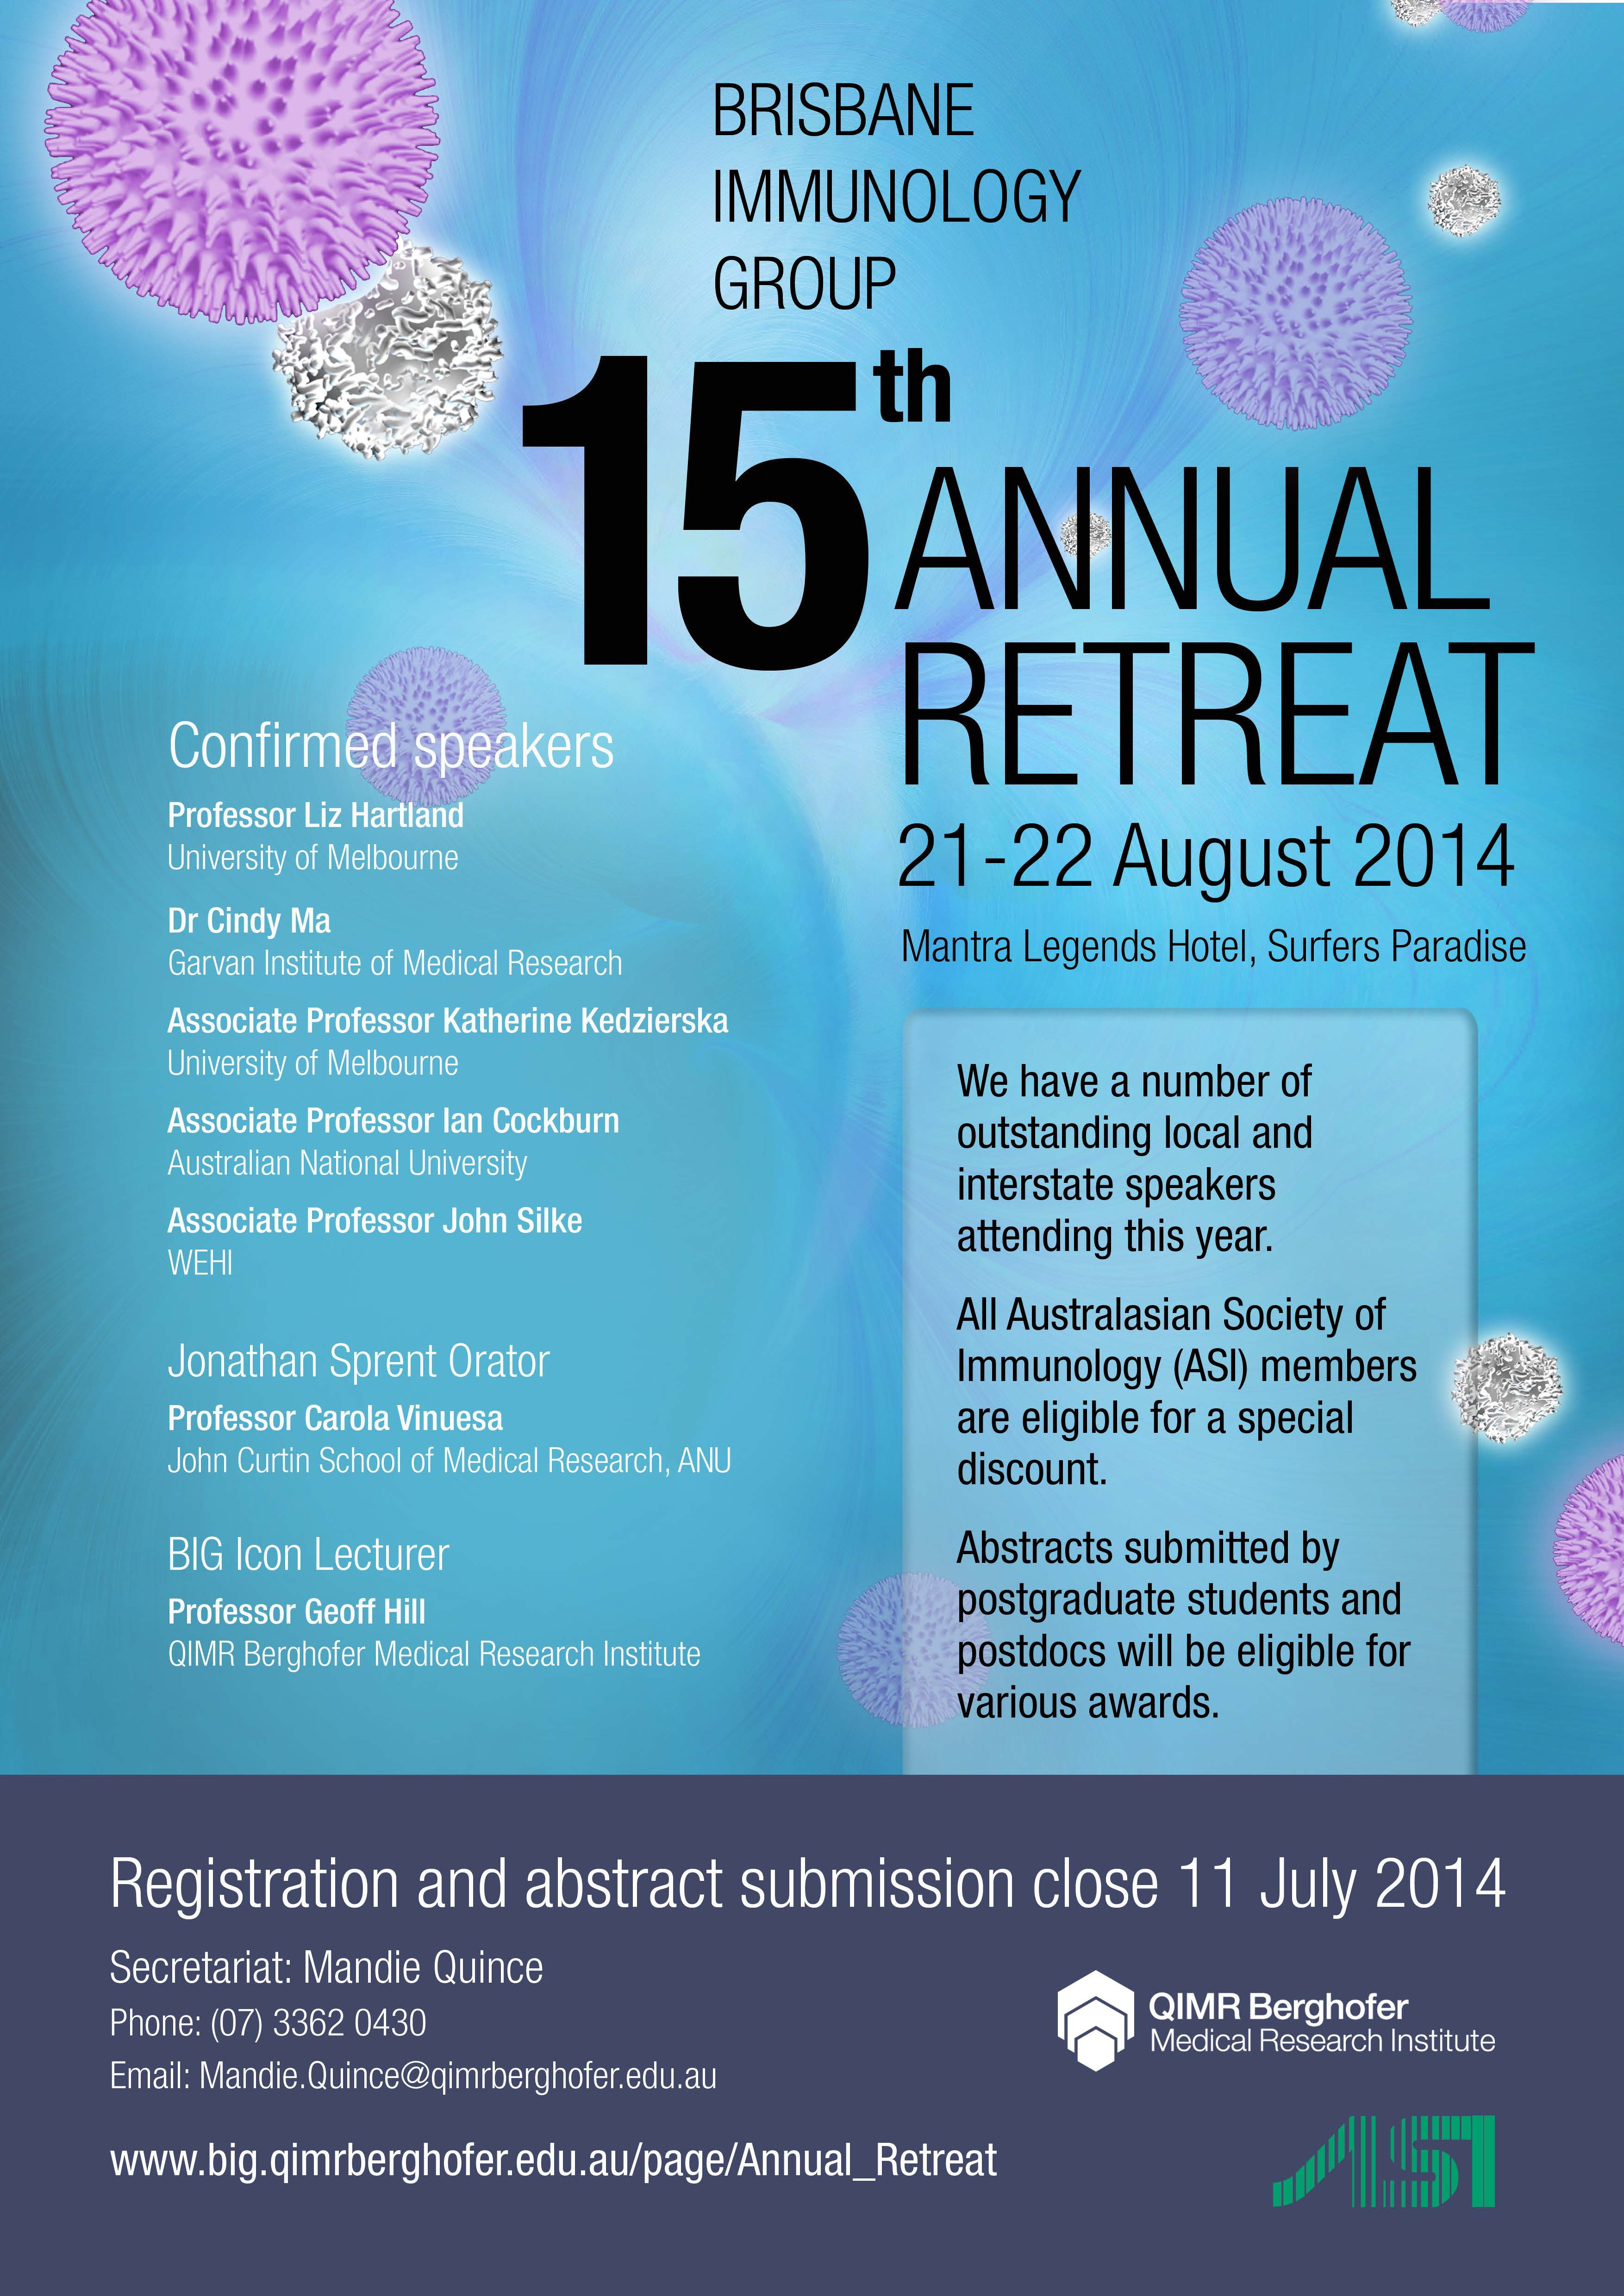 Brisbane Immunology Group 15th Annual Retreat @ Mantra Legends Hotel, Surfers Paradise | Surfers Paradise | Queensland | Australia